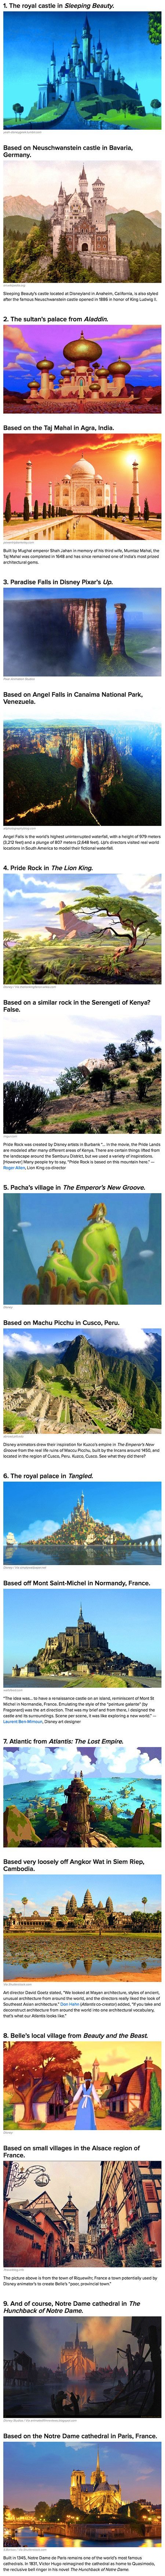 Here are some real-life locations that inspired objects in famous Disney films.